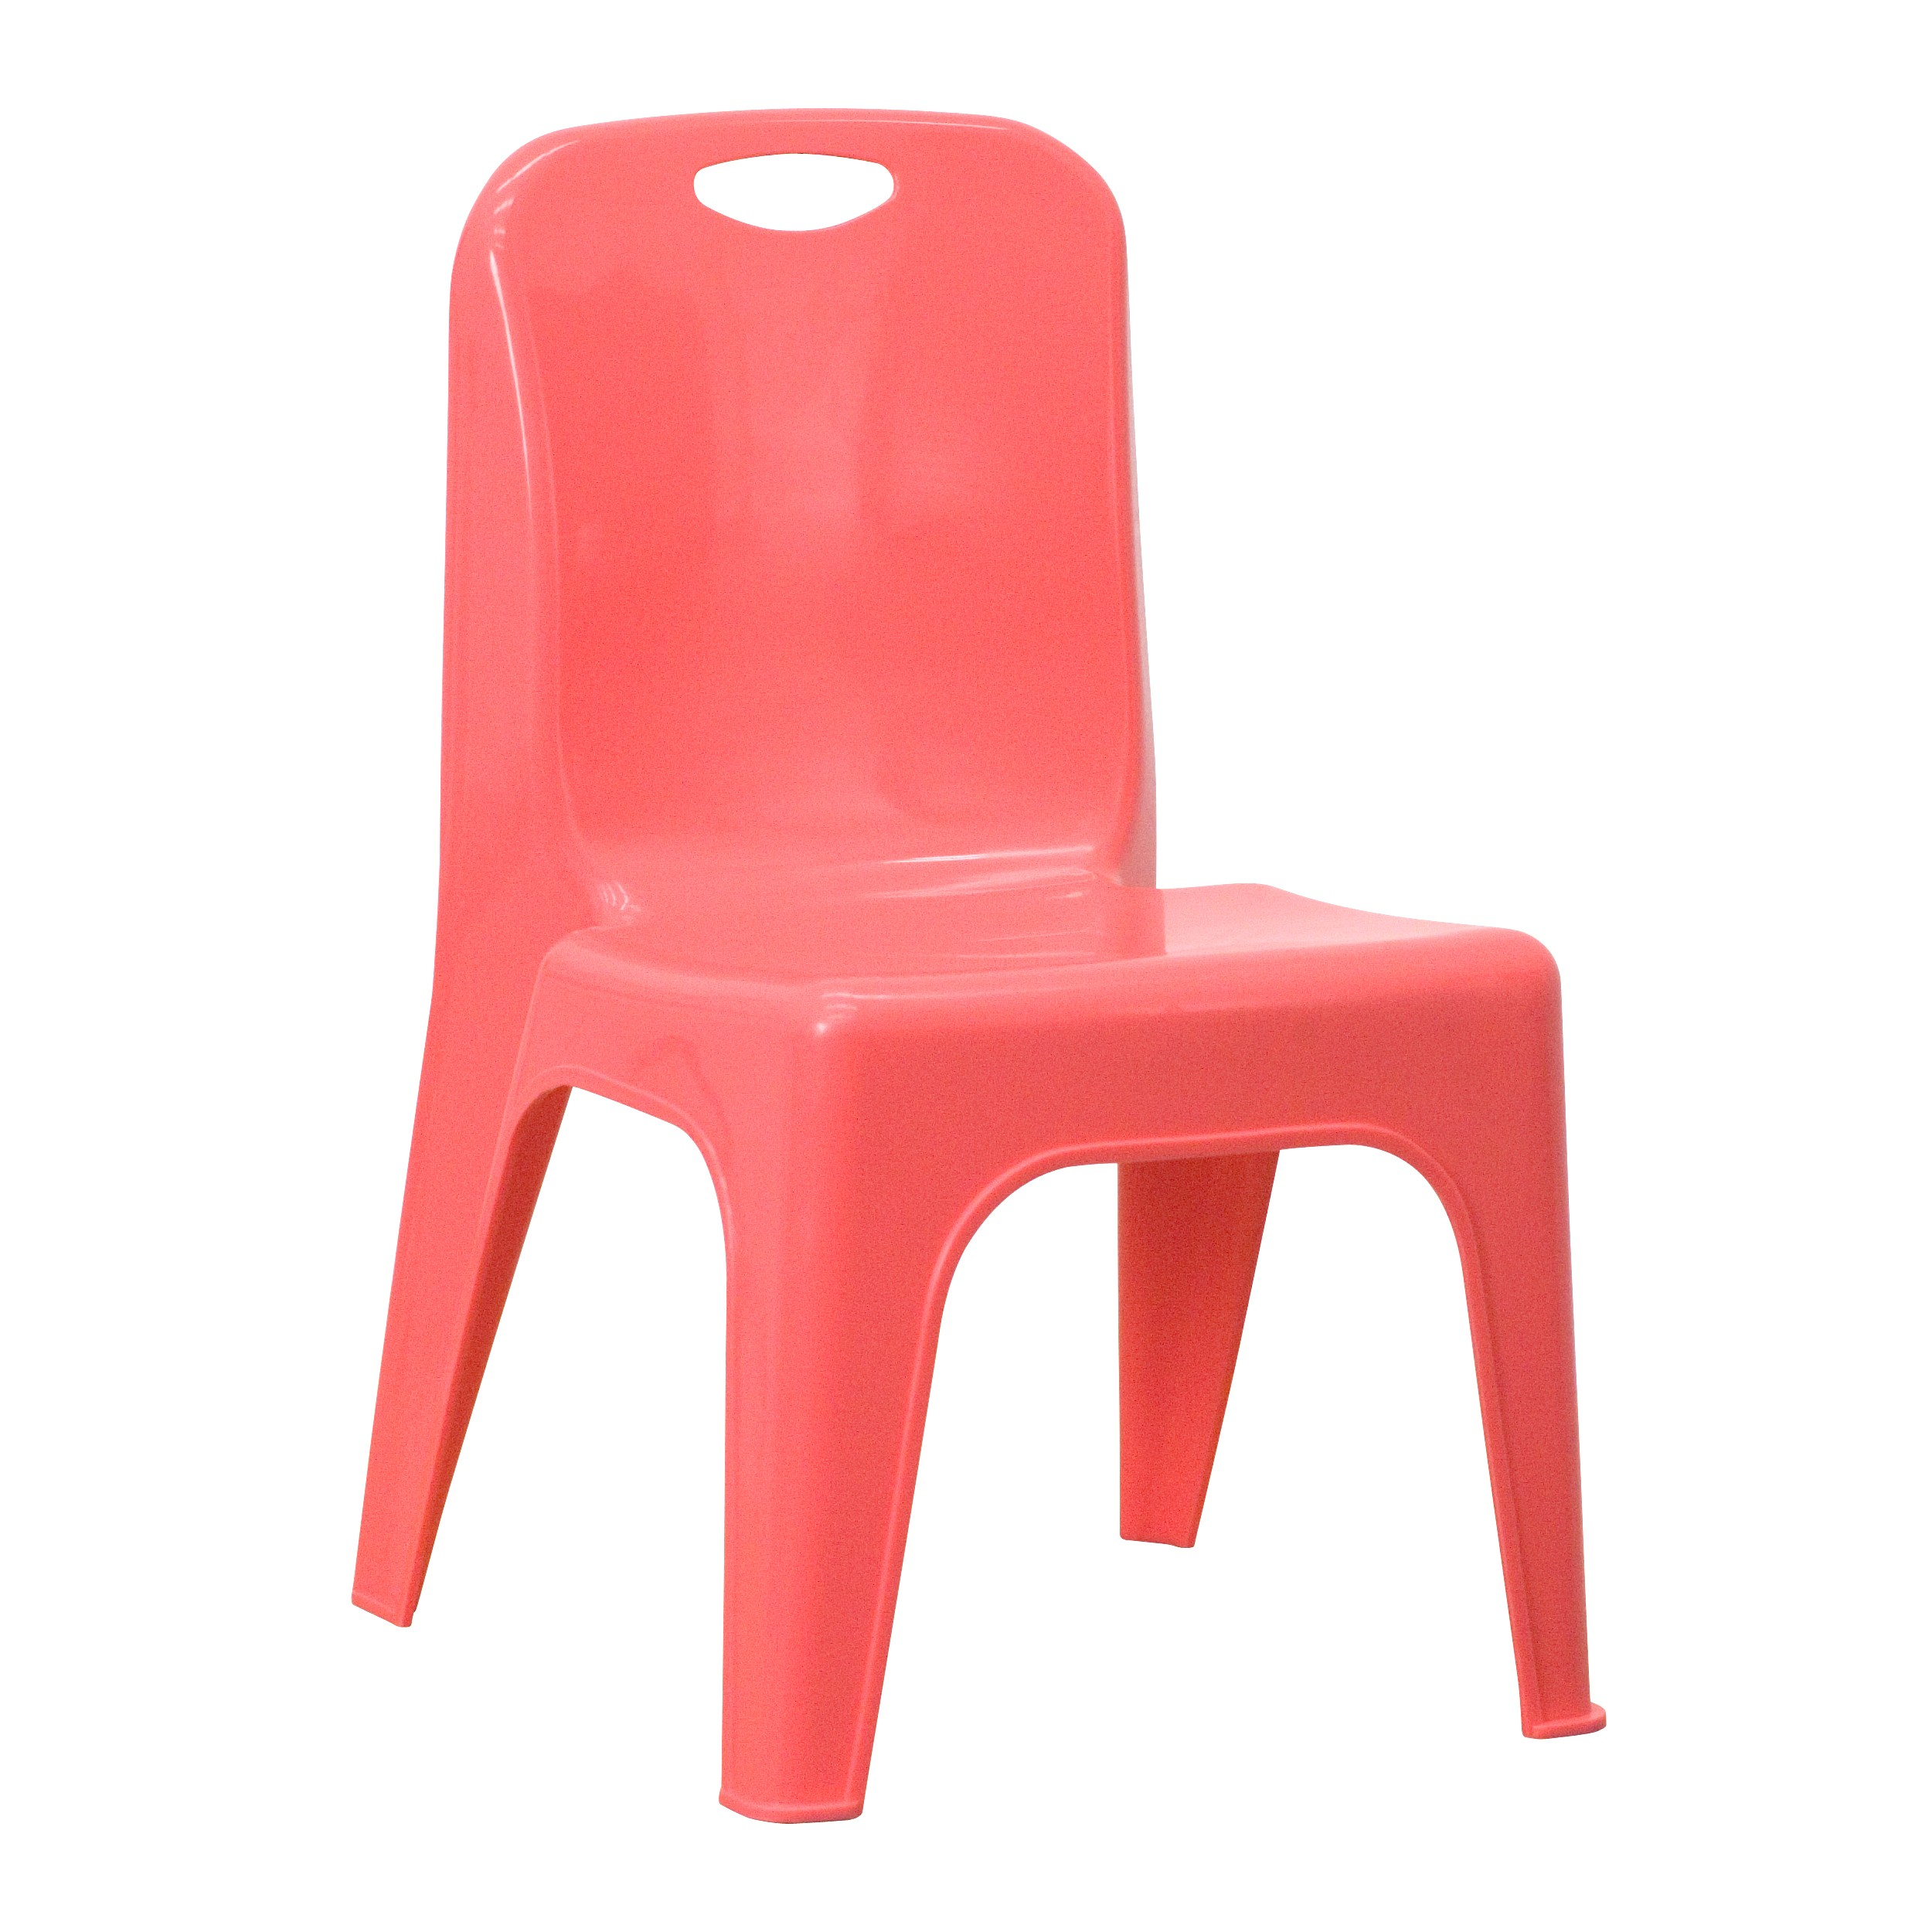 MFO Red Plastic Stackable School Chair with Carrying Handle and 11